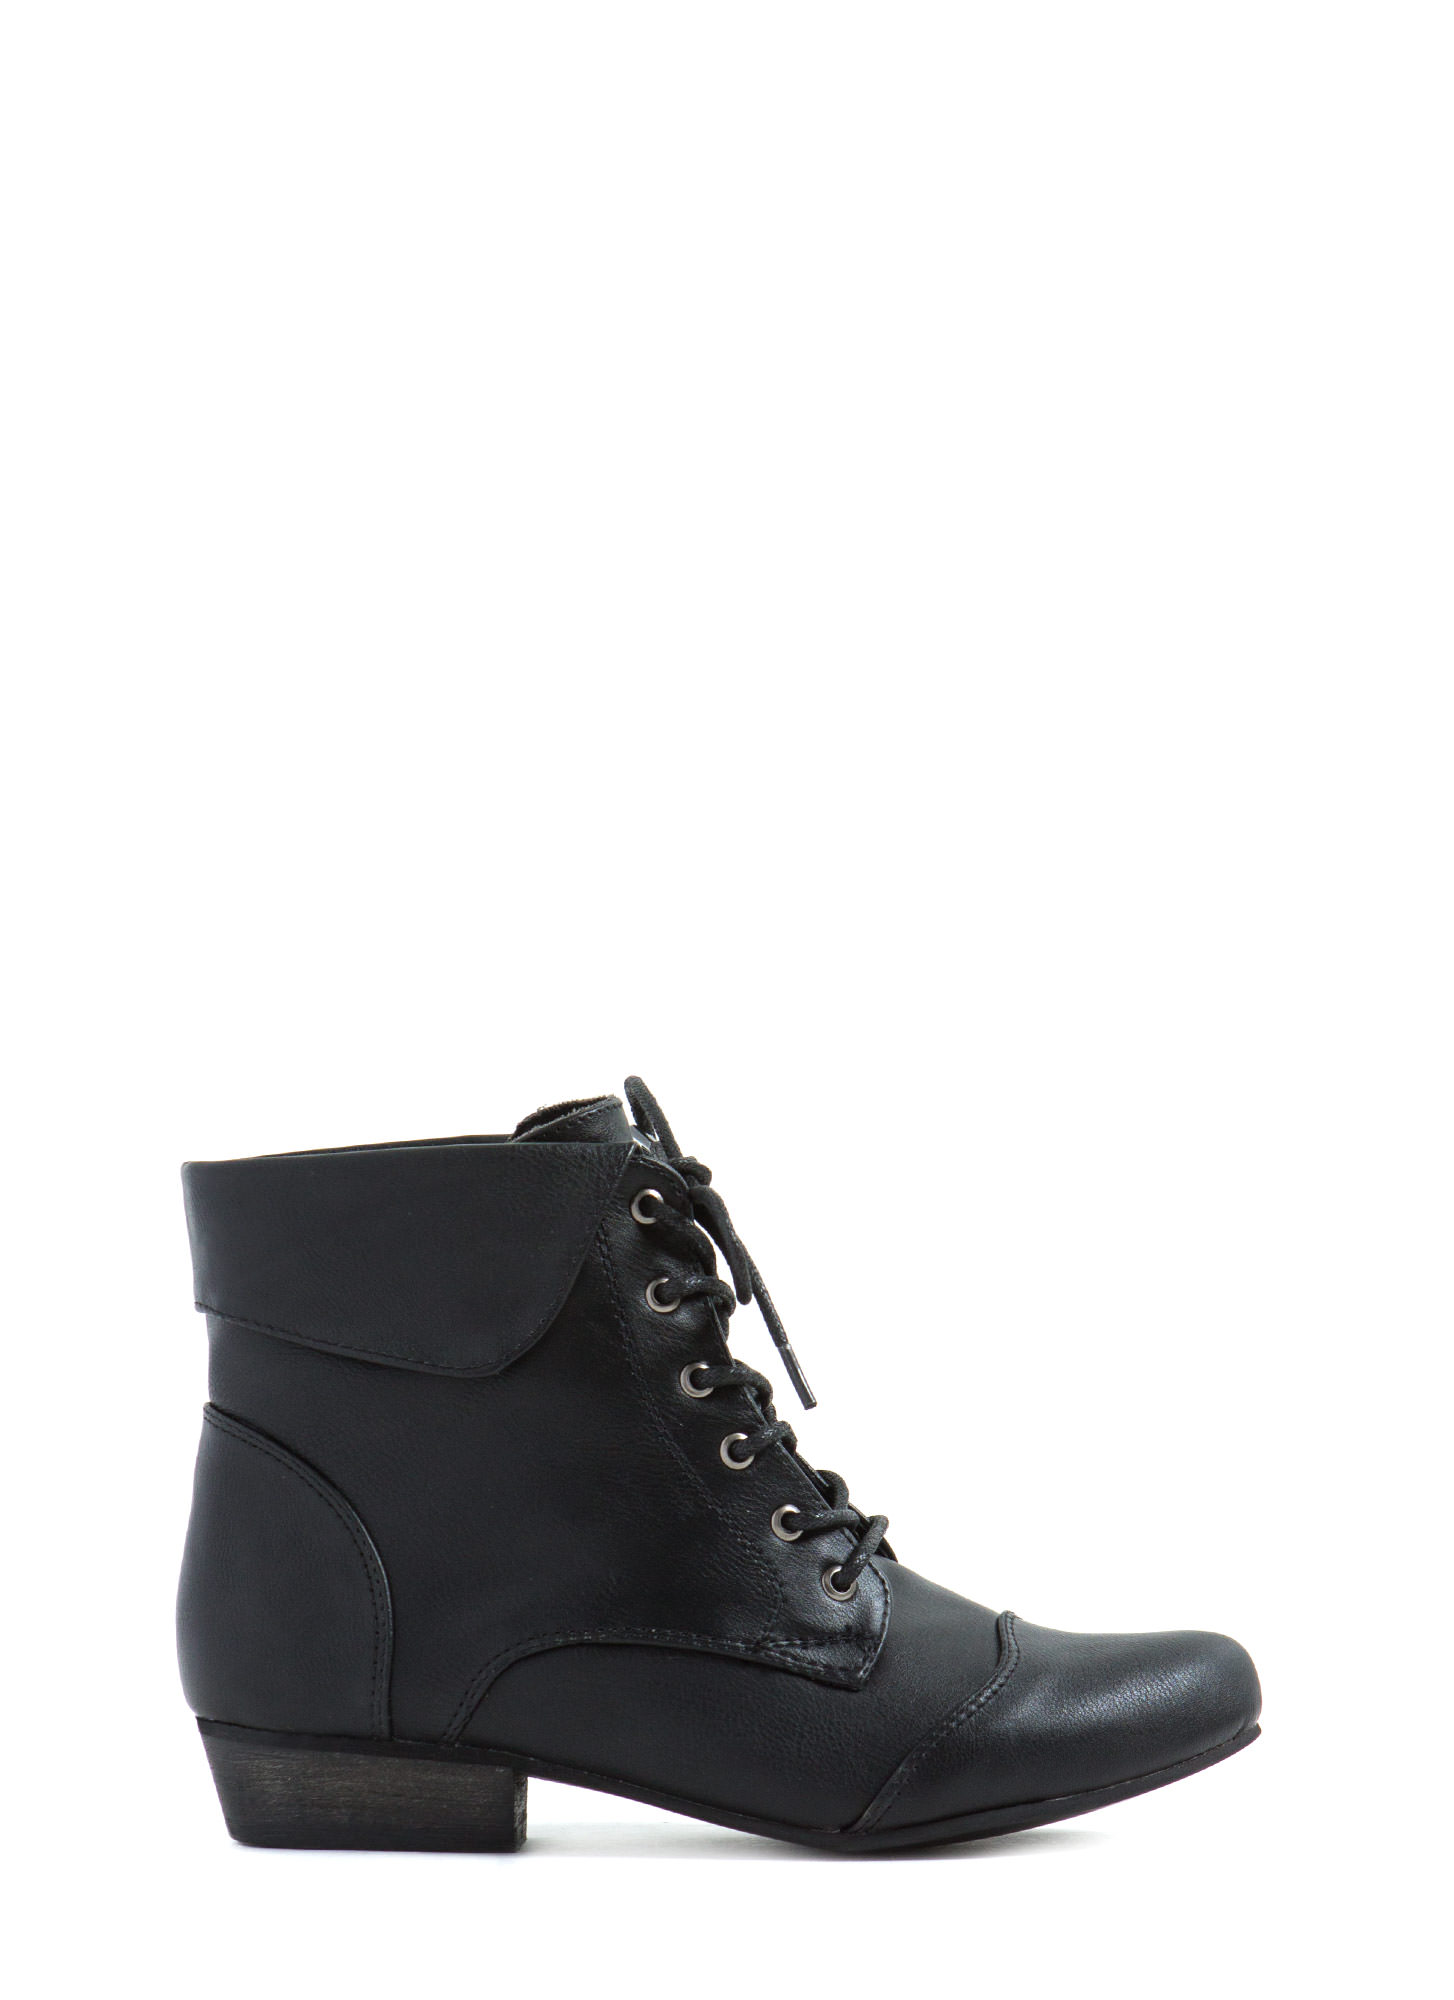 Black Ankle Boots Lace Up - Yu Boots